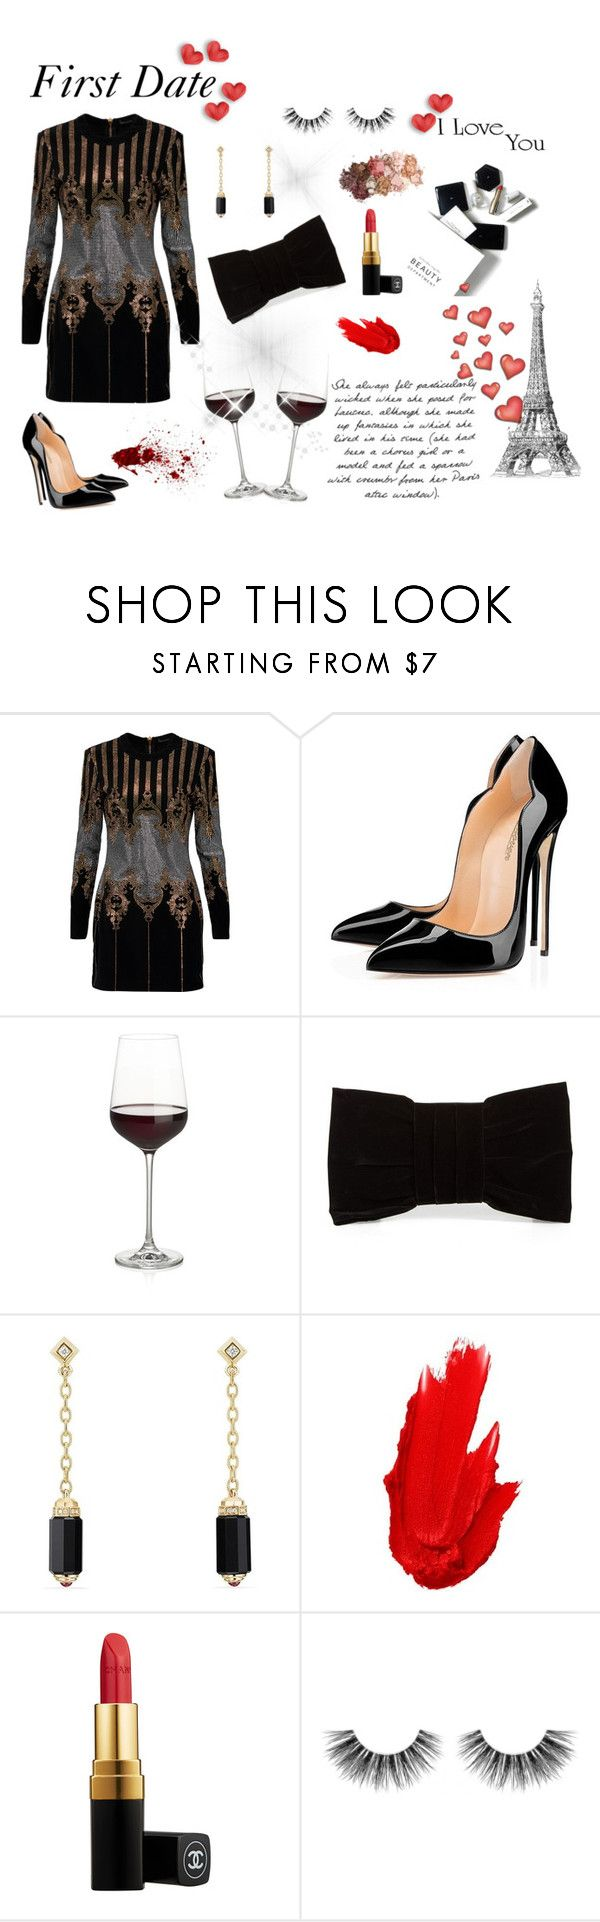 """""""#36-First date"""" by renata-msantos ❤ liked on Polyvore featuring H&M, Balmain, Crate and Barrel, Shiraleah, David Yurman, Maybelline, Chanel, Velour Lashes, Sigma and WALL"""